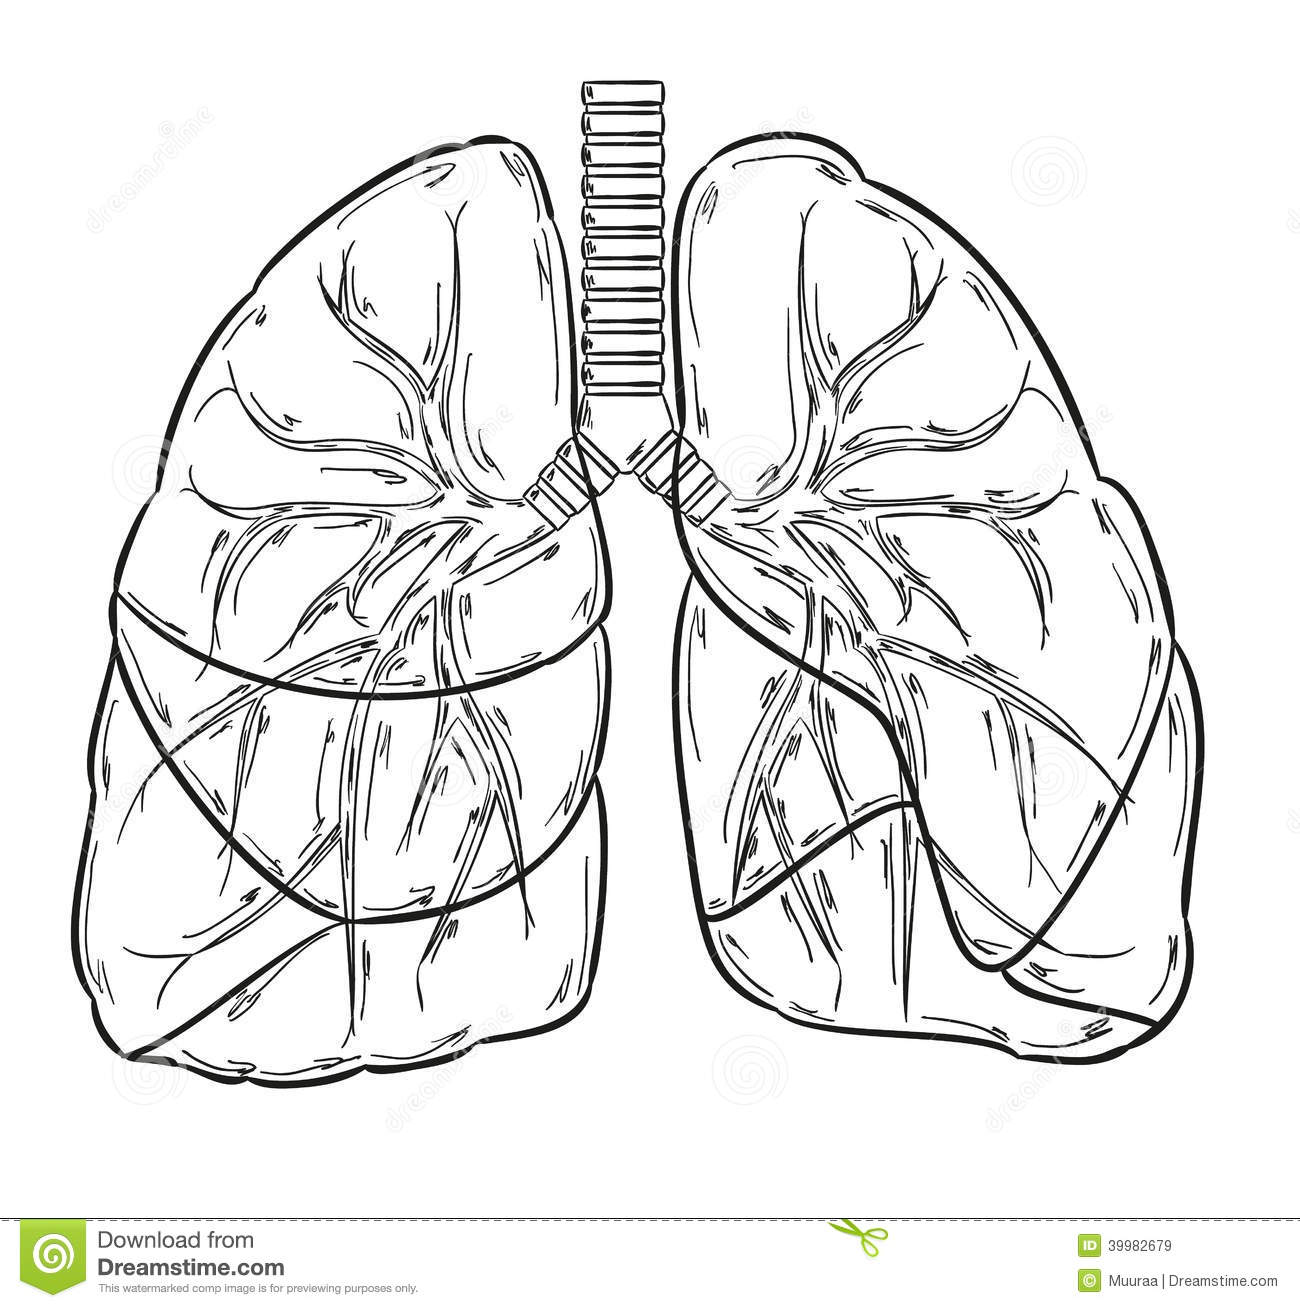 Lungs Sketch Stock Vector Illustration Of Lobe Handdrawn